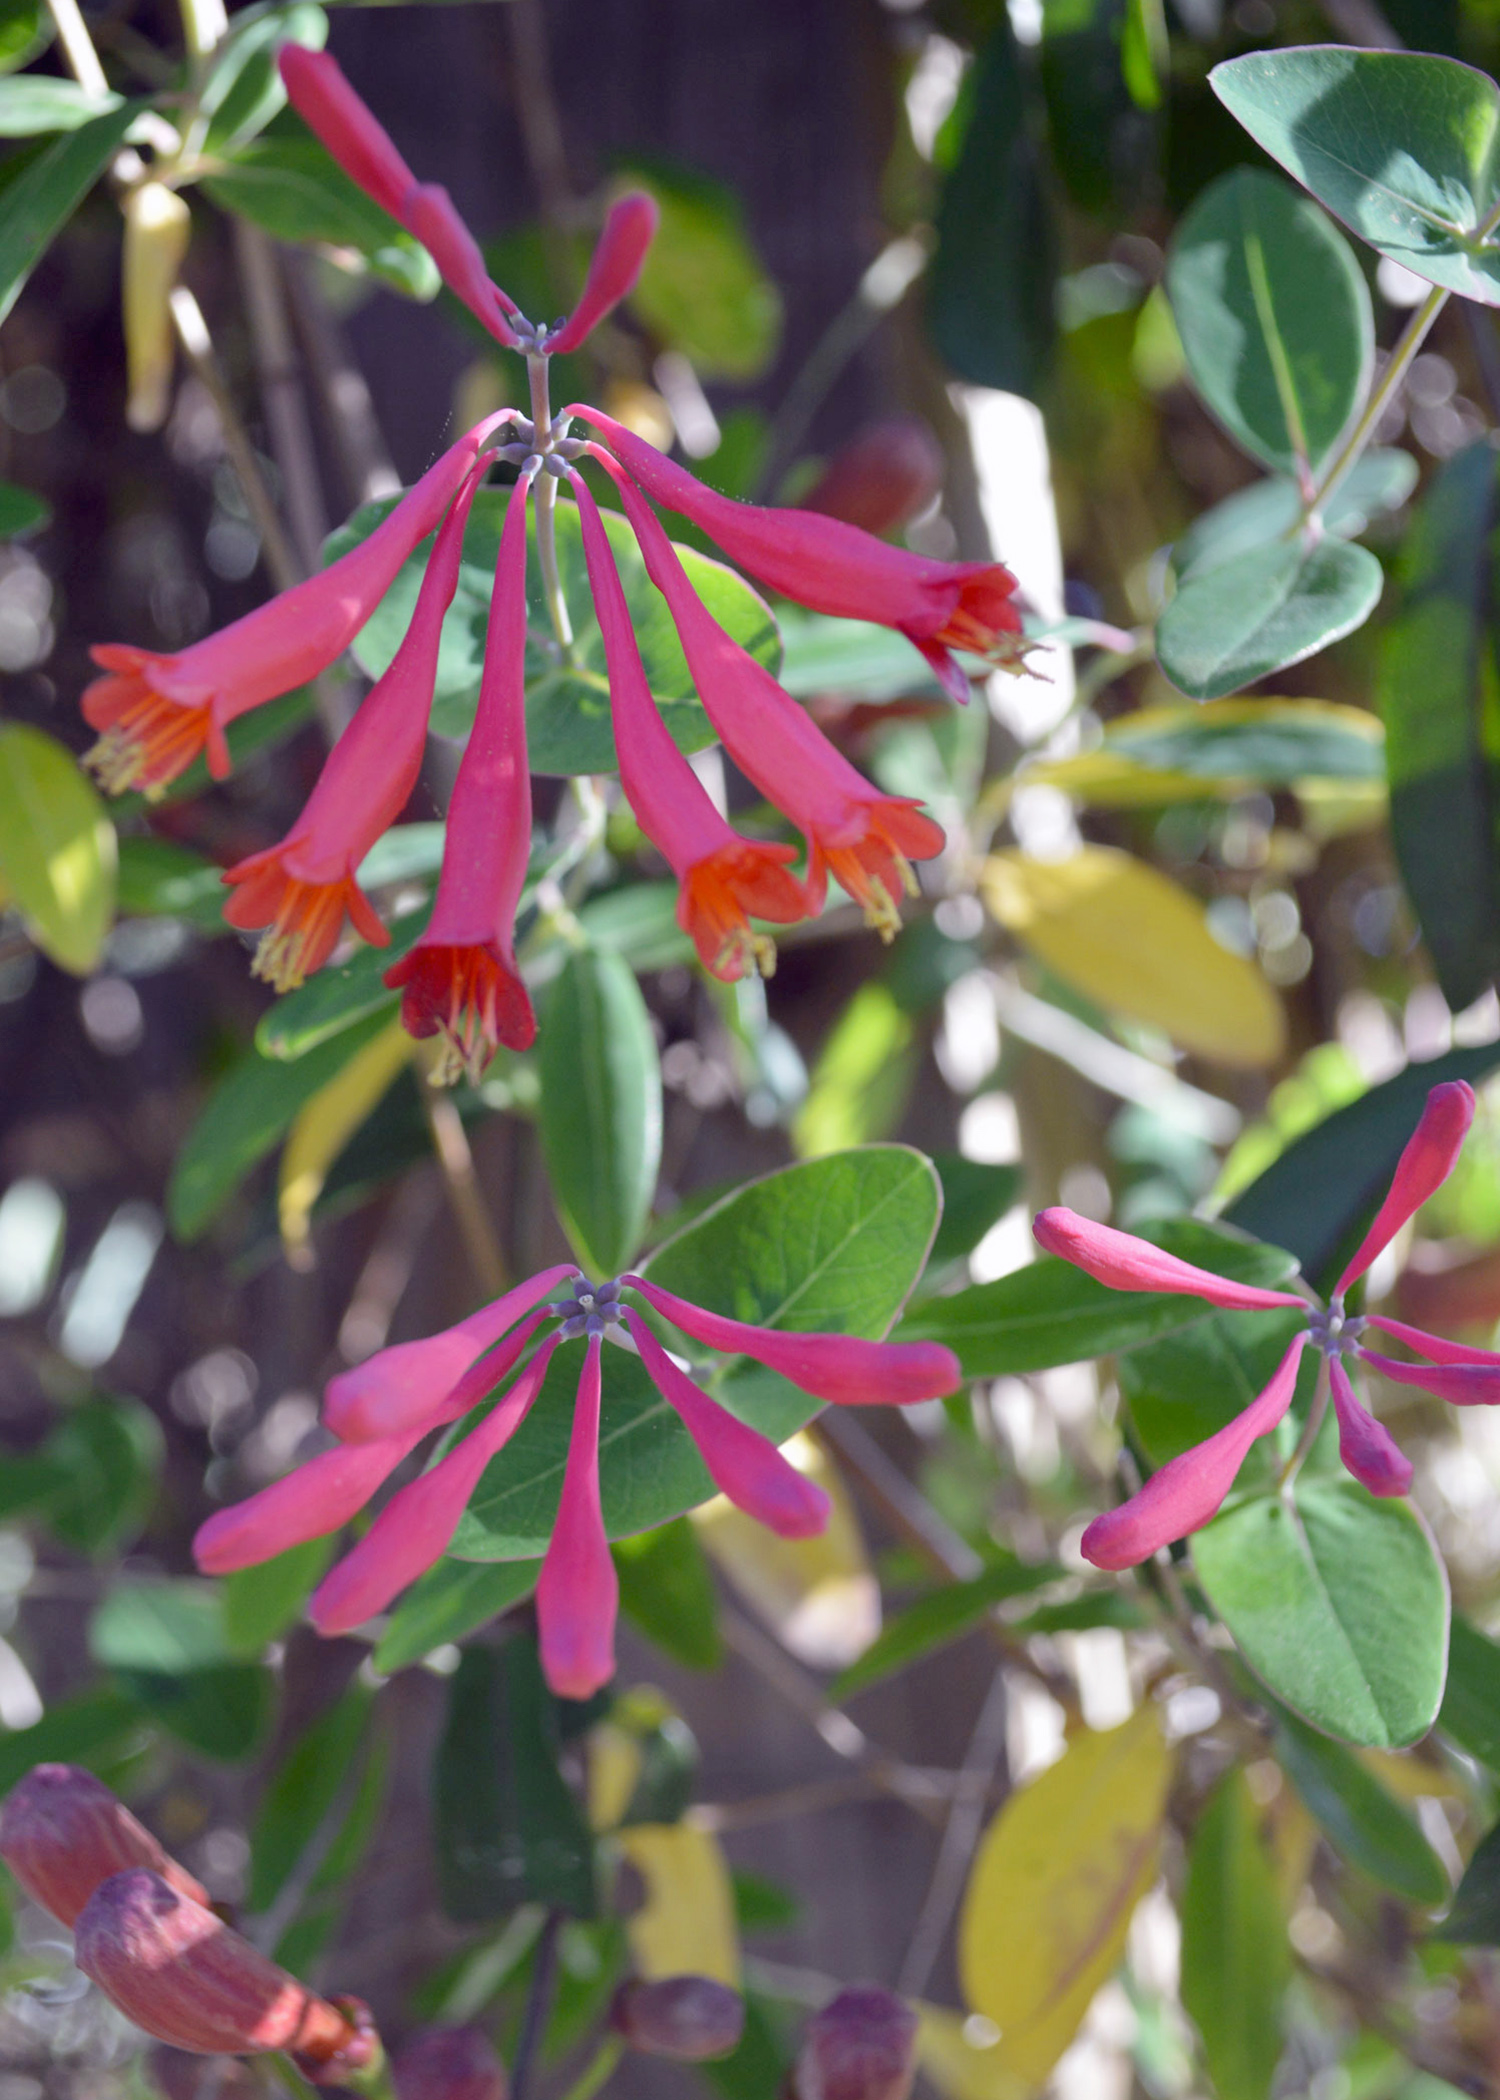 Attract hummingbirds with native plants